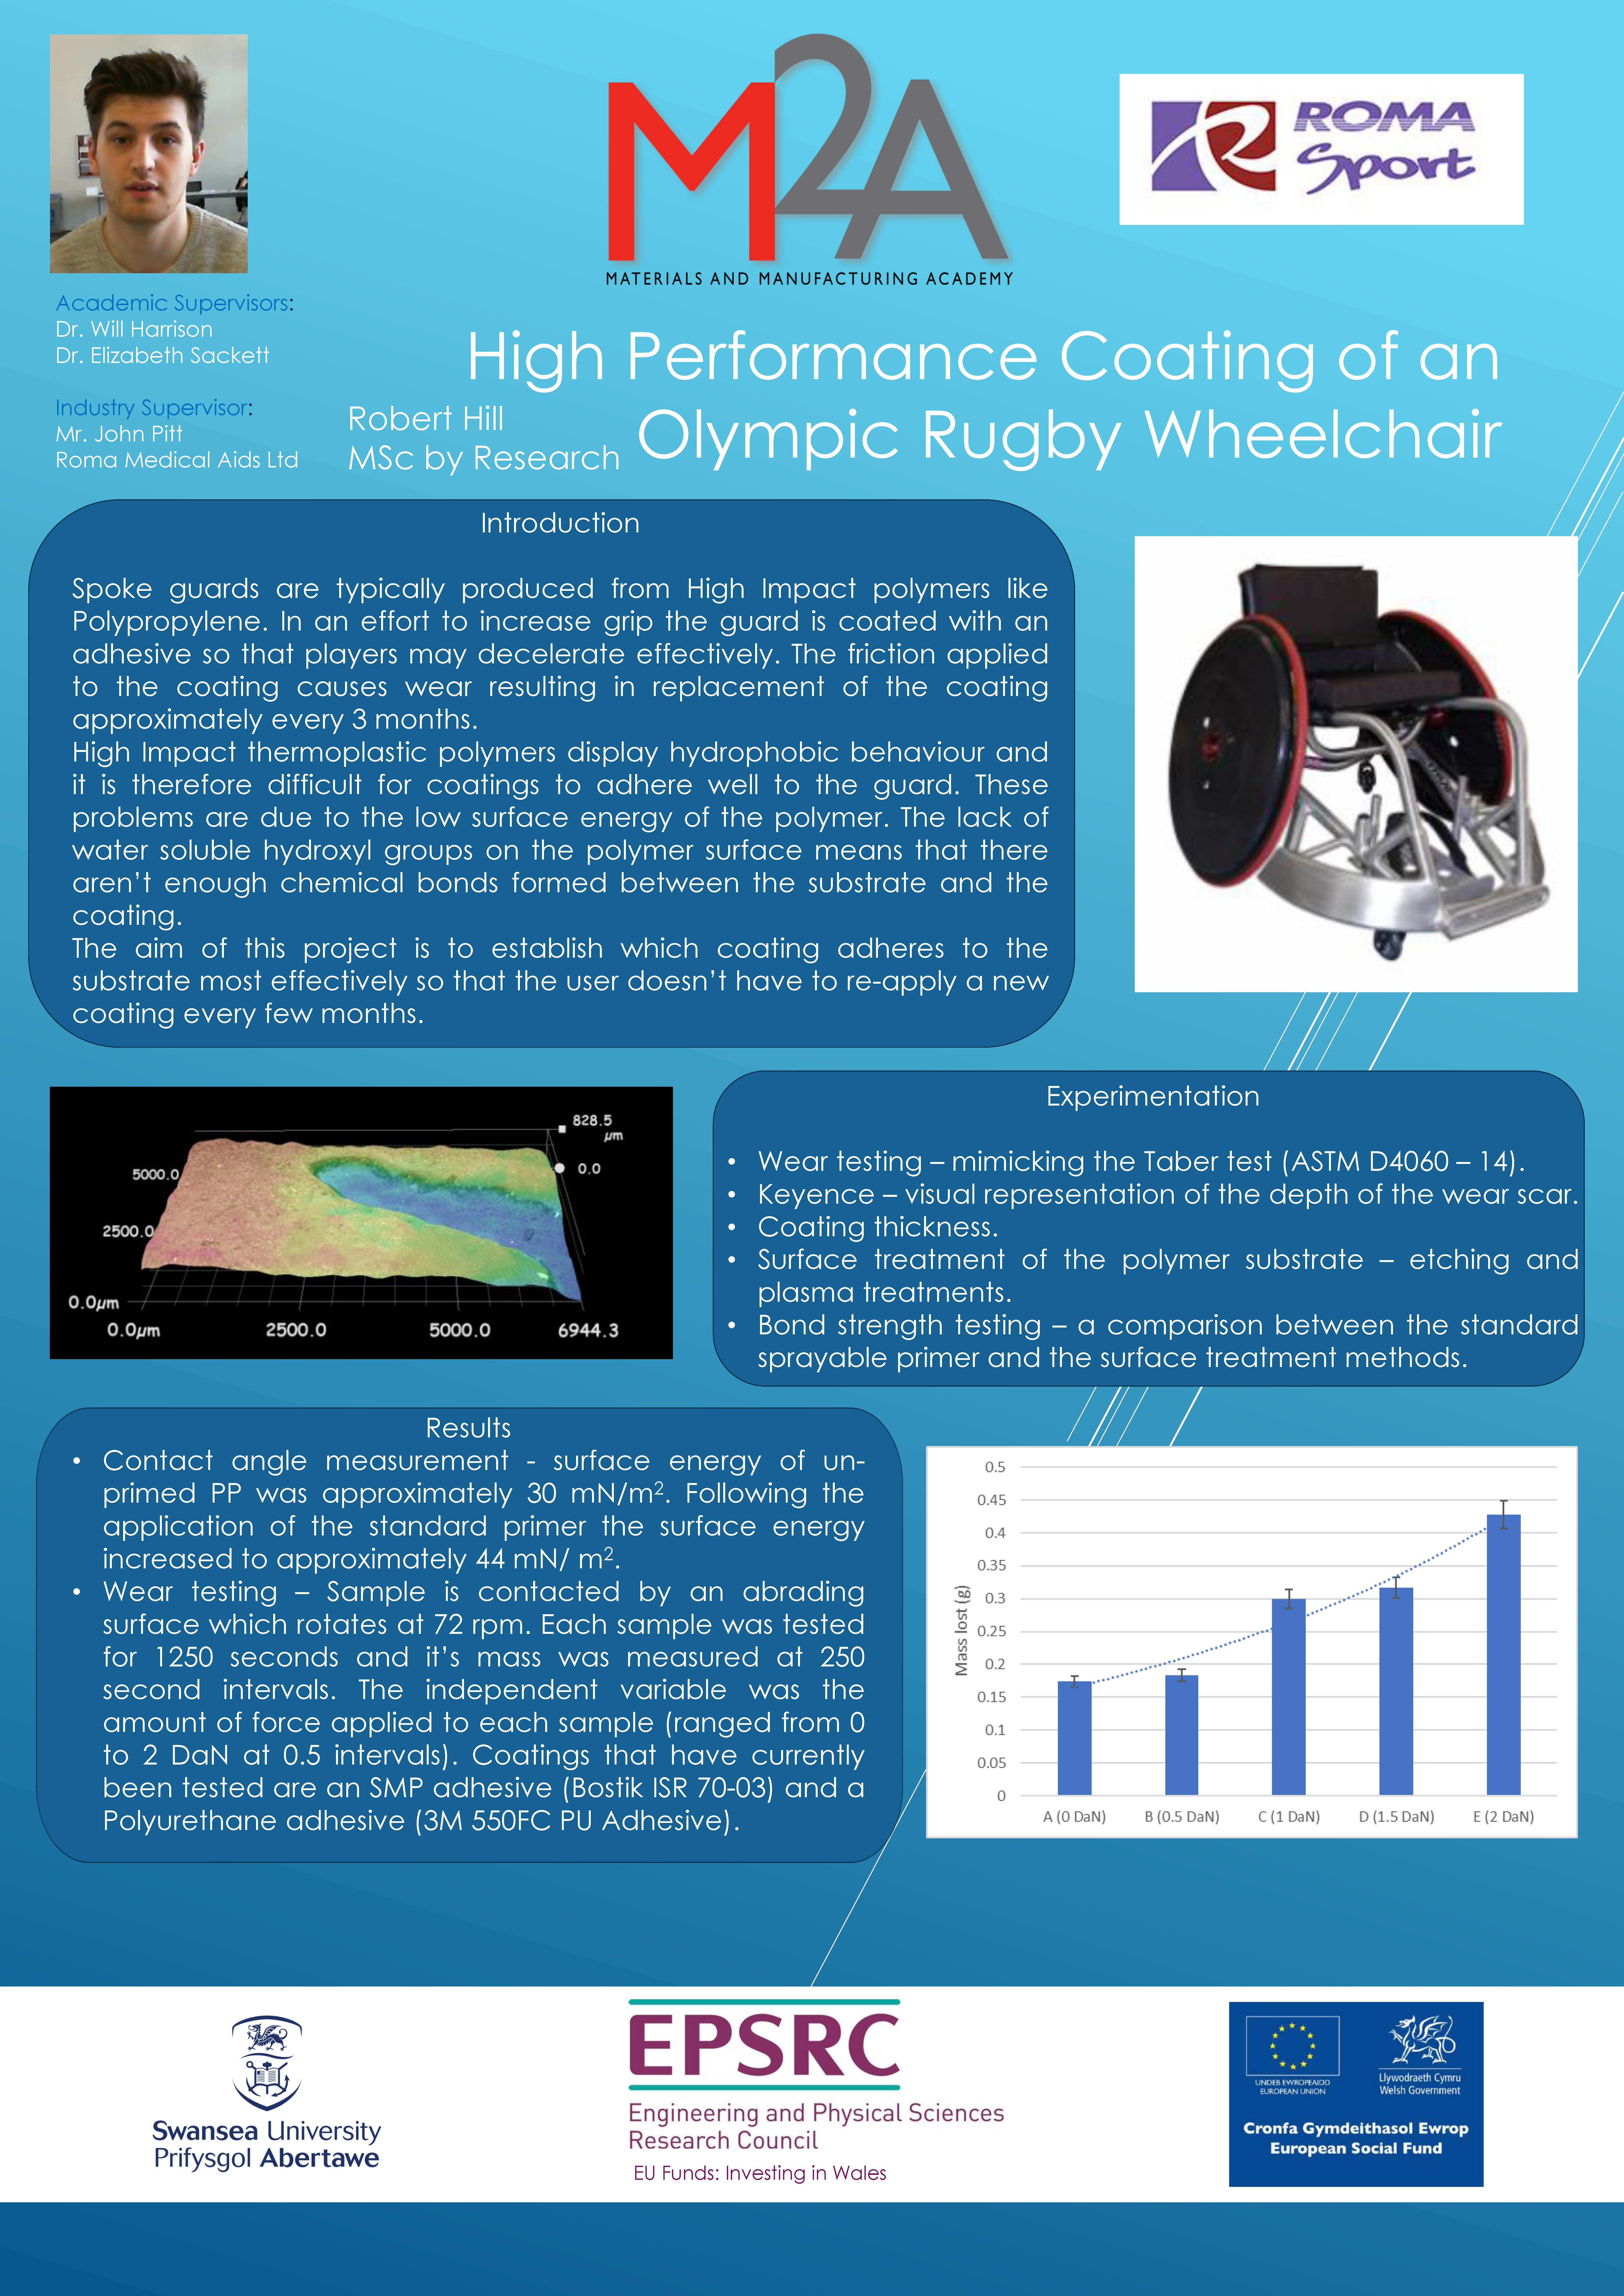 High Performance Coating of an Olympic Rugby Wheelchair